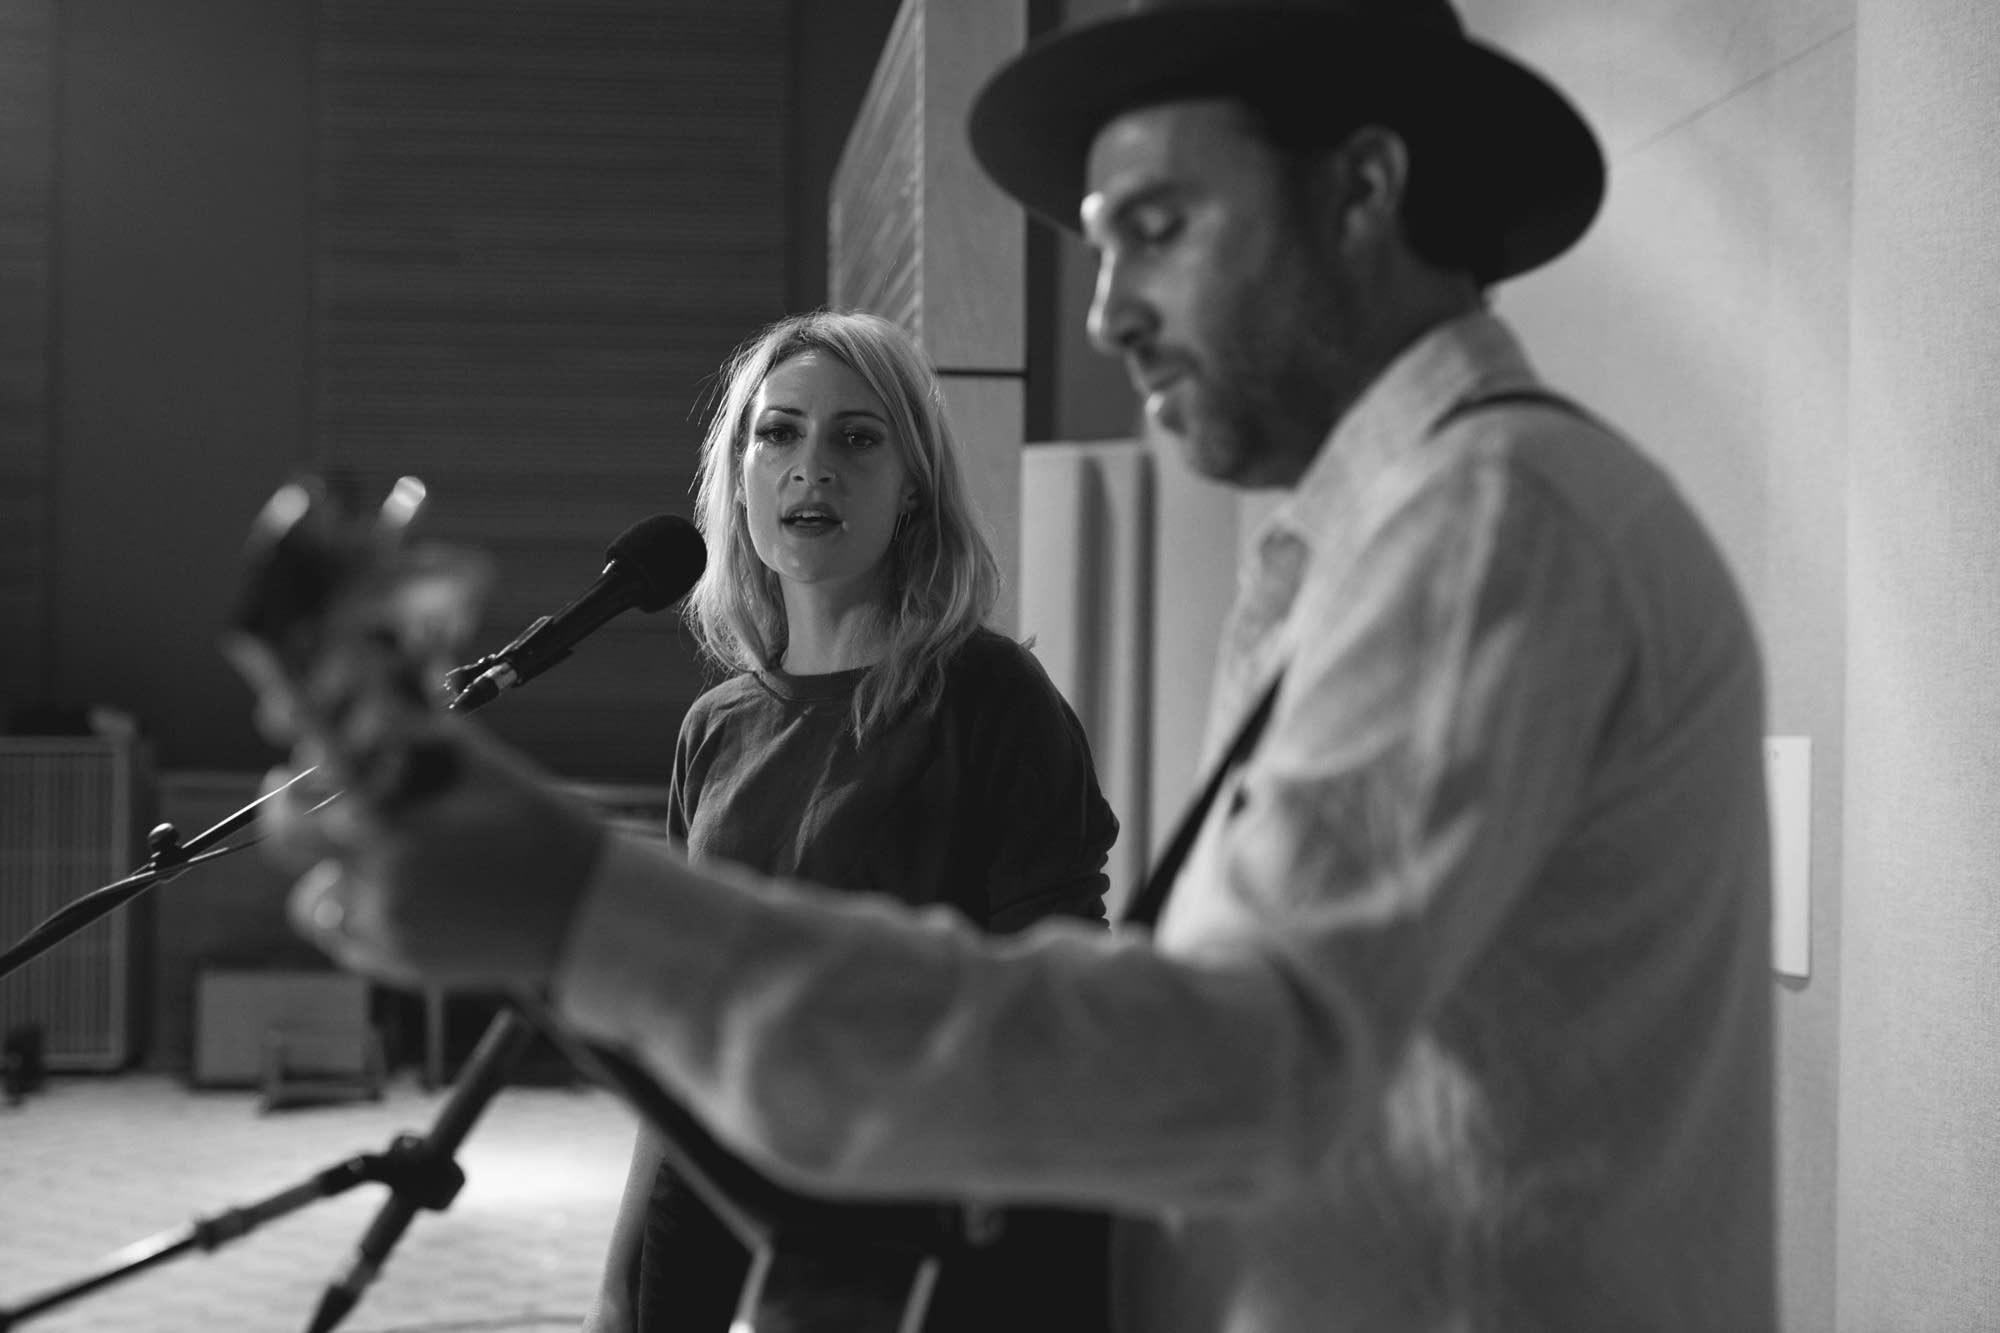 Emily Haines and Jimmy Shaw of Metric in The Current studio